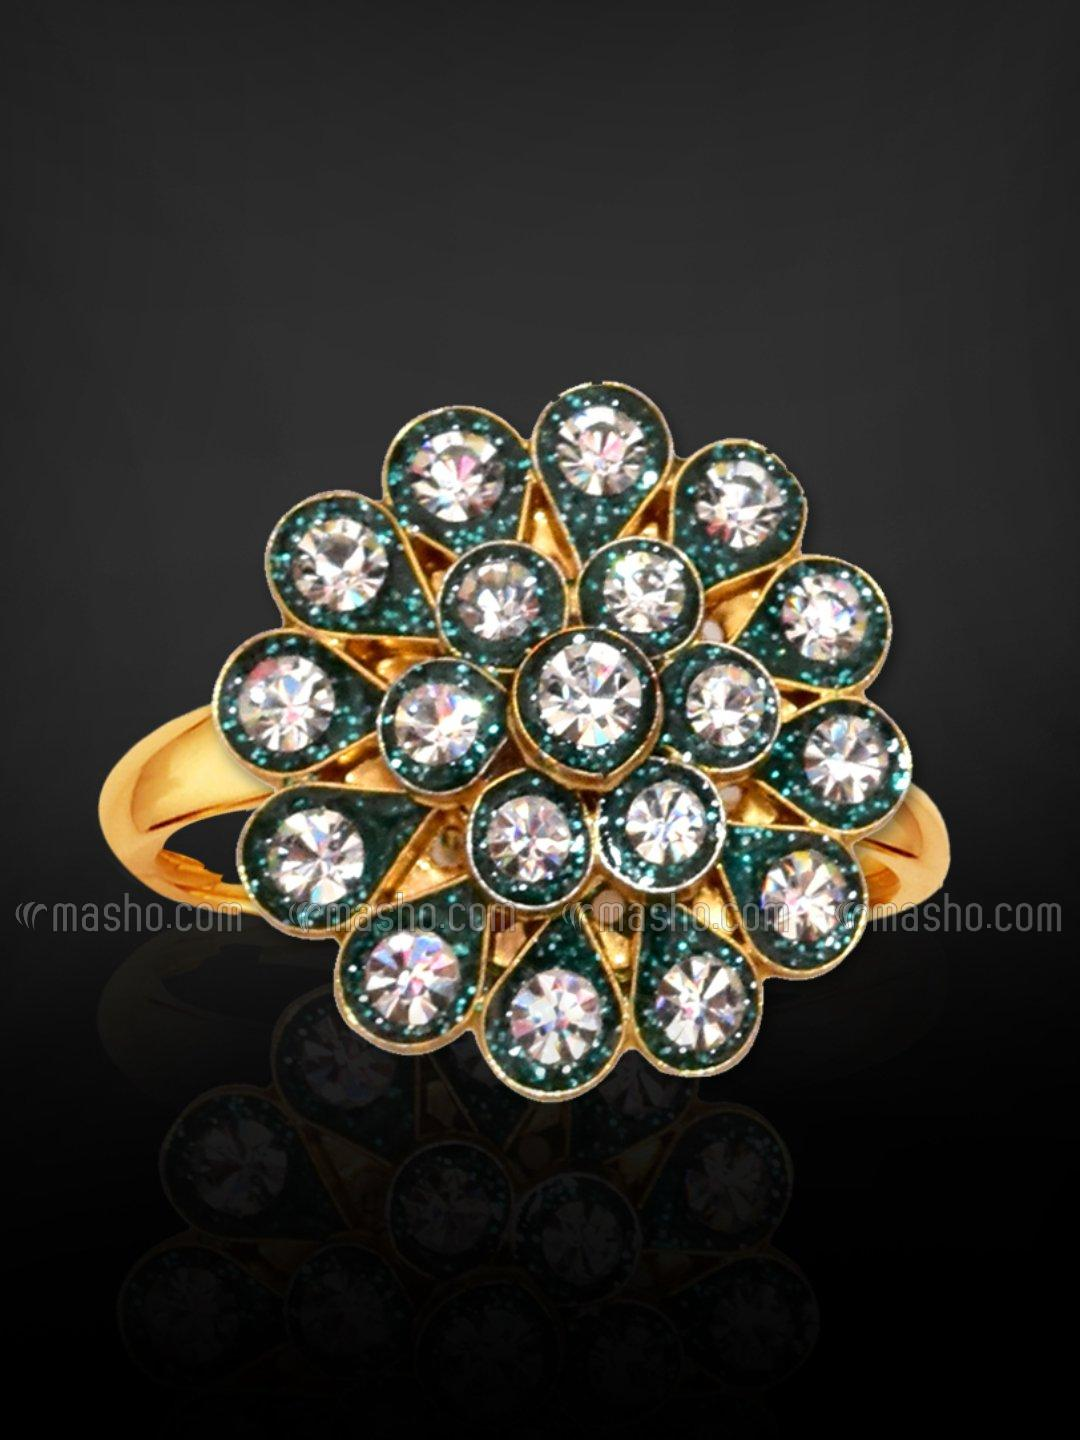 Awadhi Handmade High Quality Brass With Golden Polish Finger Rings In Green